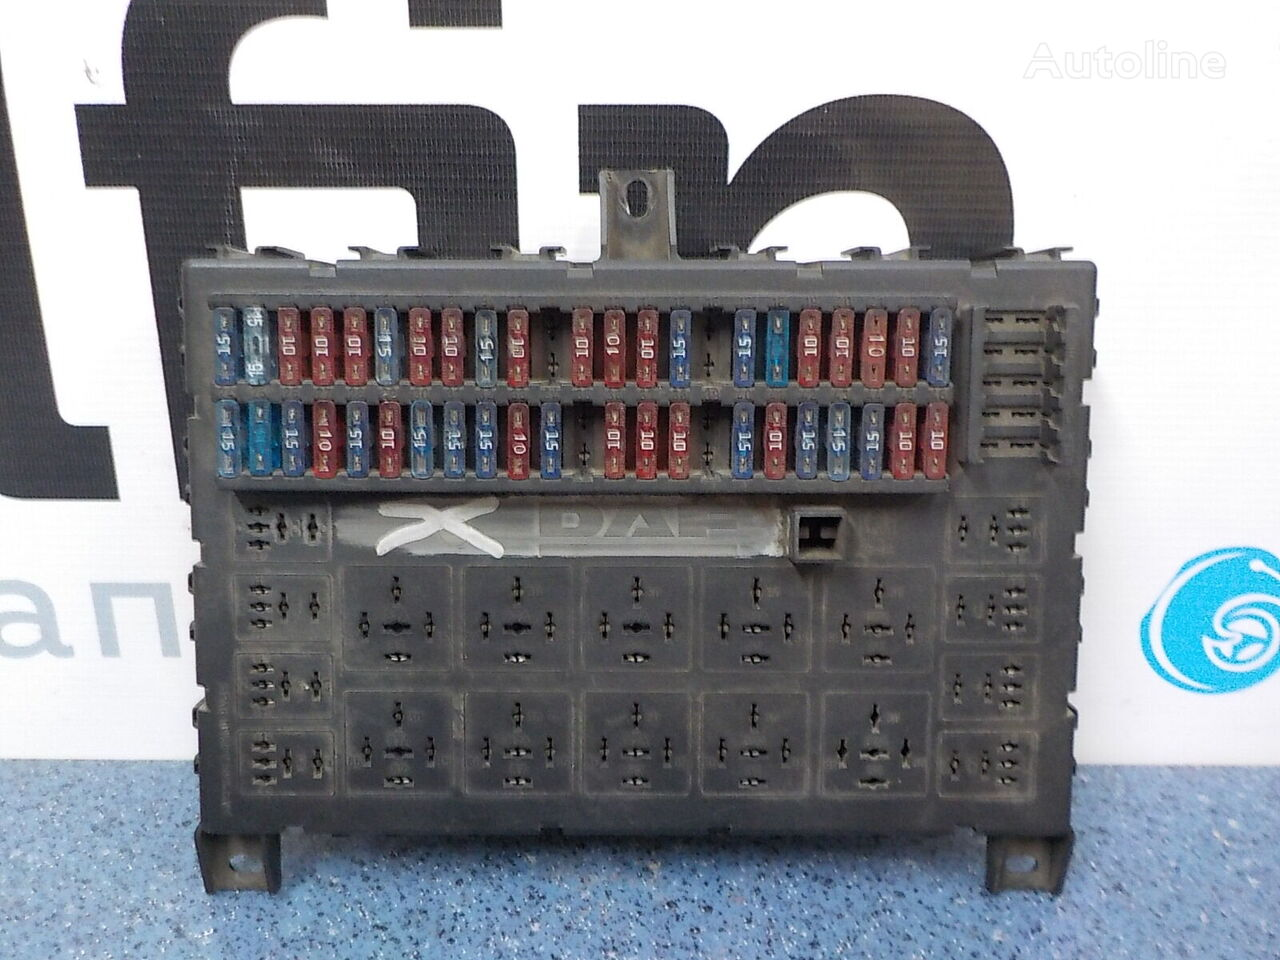 fuse block for DAF truck